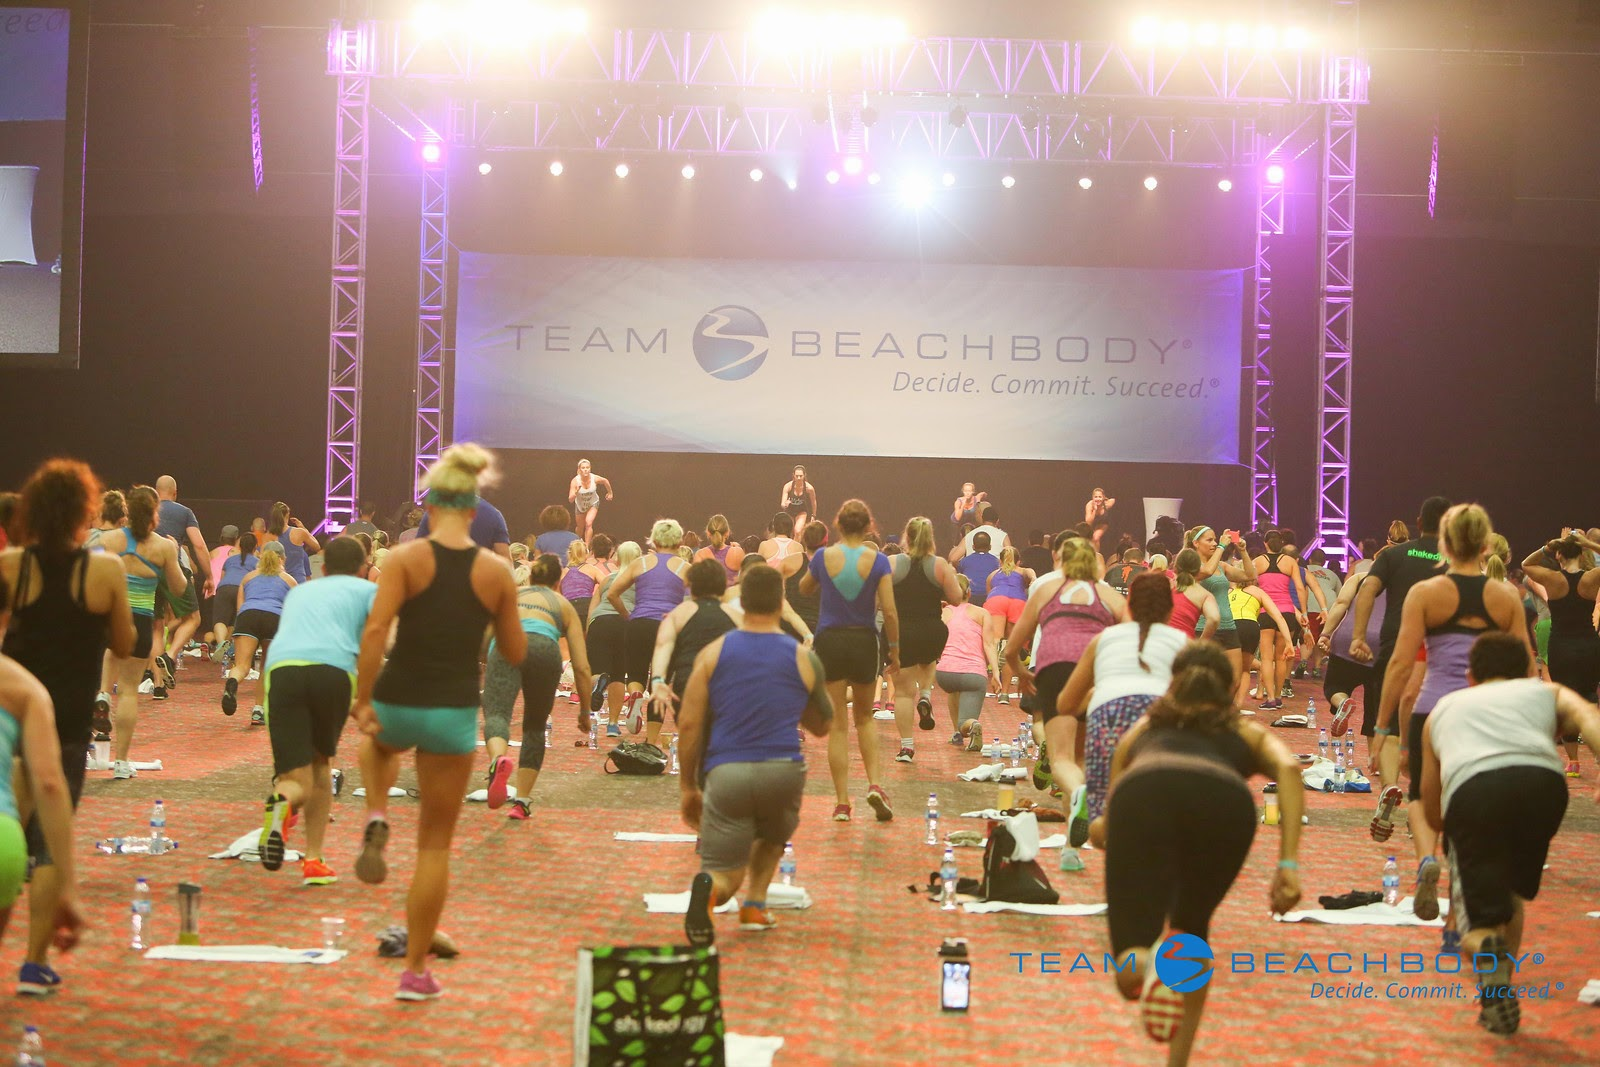 beachbody success club trip, live workout